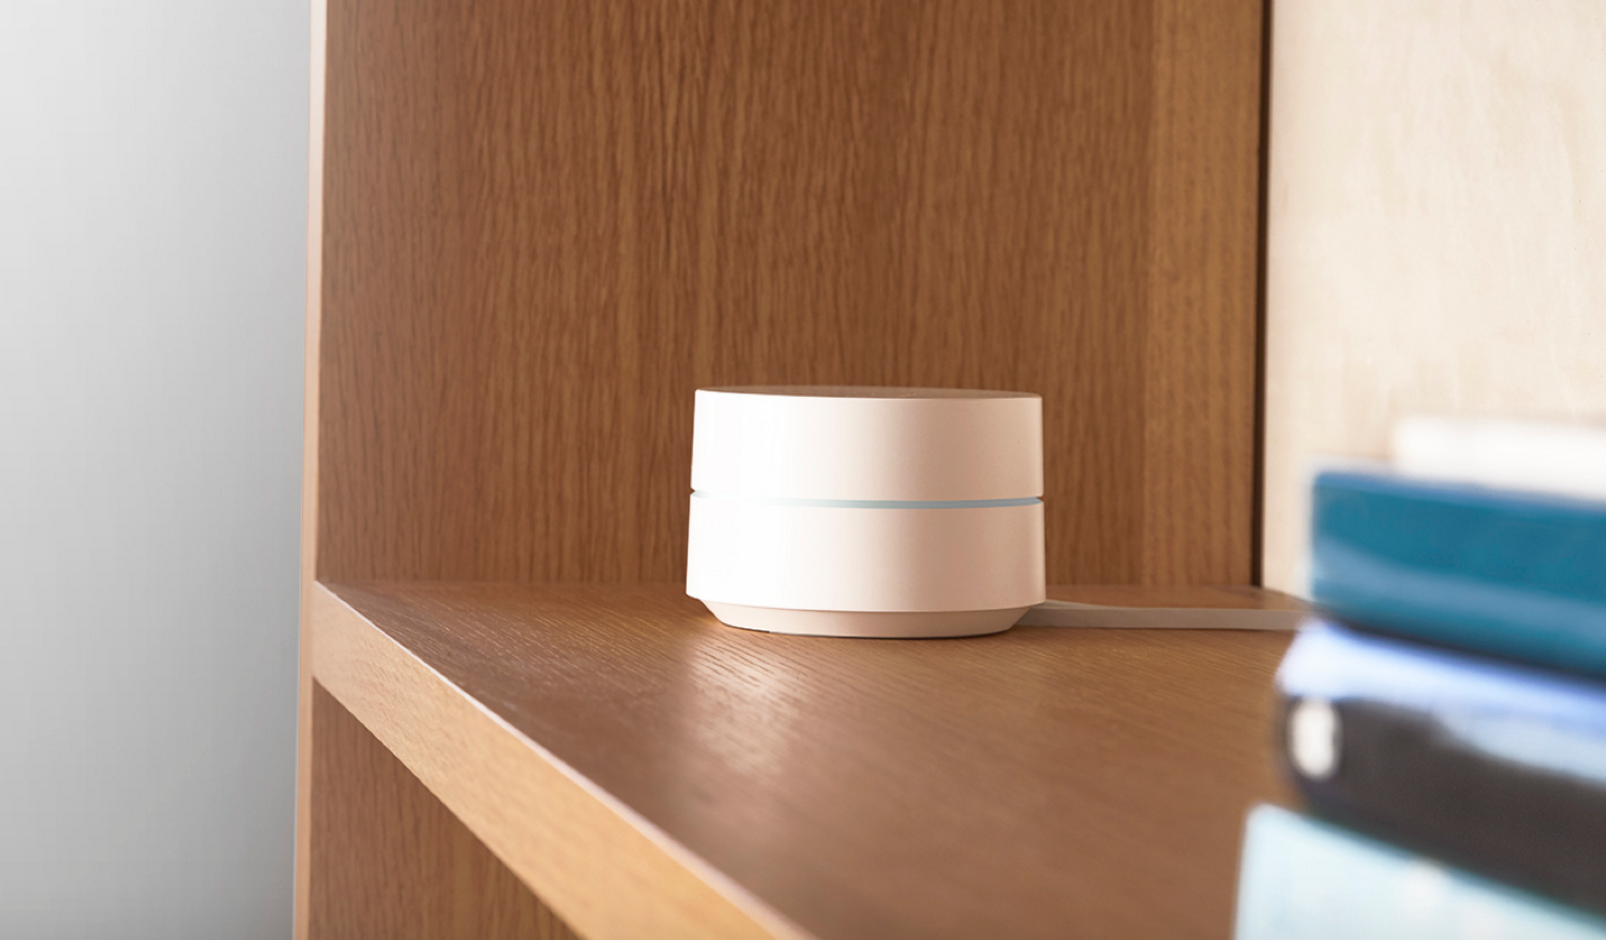 OnHub router prices are dropping fast thanks to Google WiFi